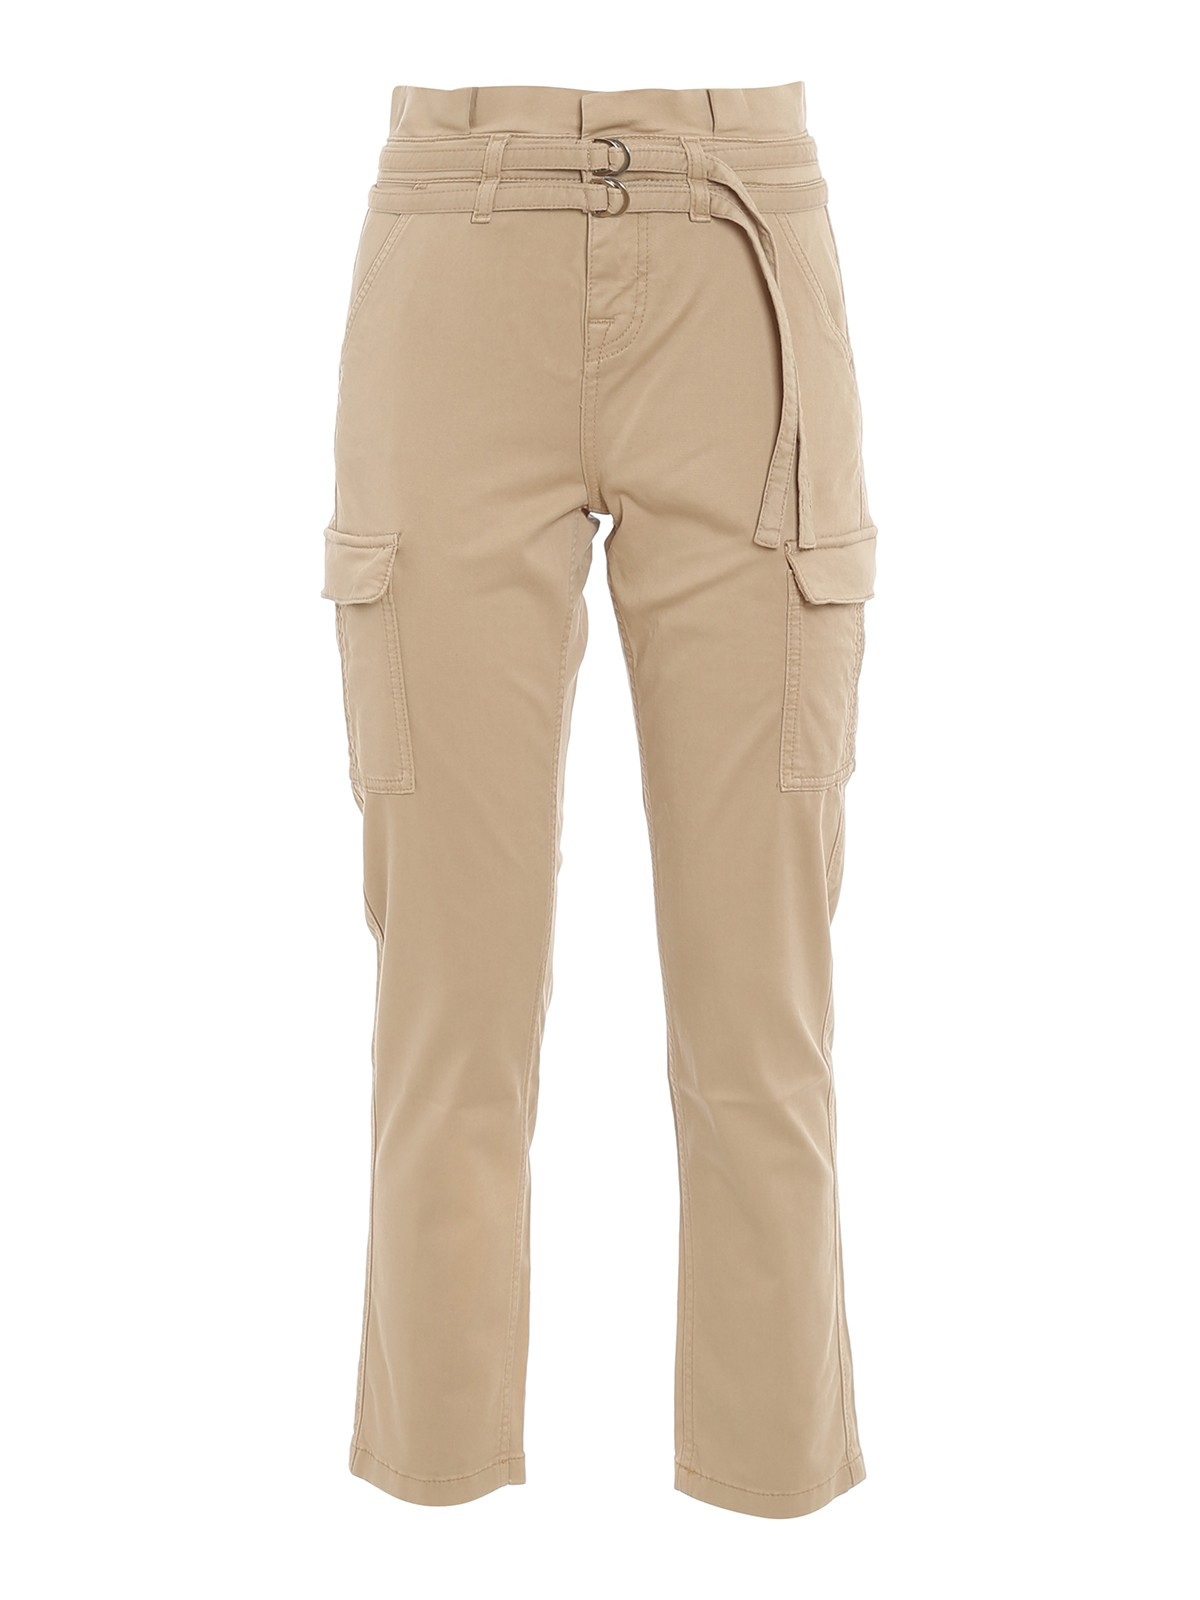 7 For All Mankind Cottons PAPERBAG CARGO TROUSERS